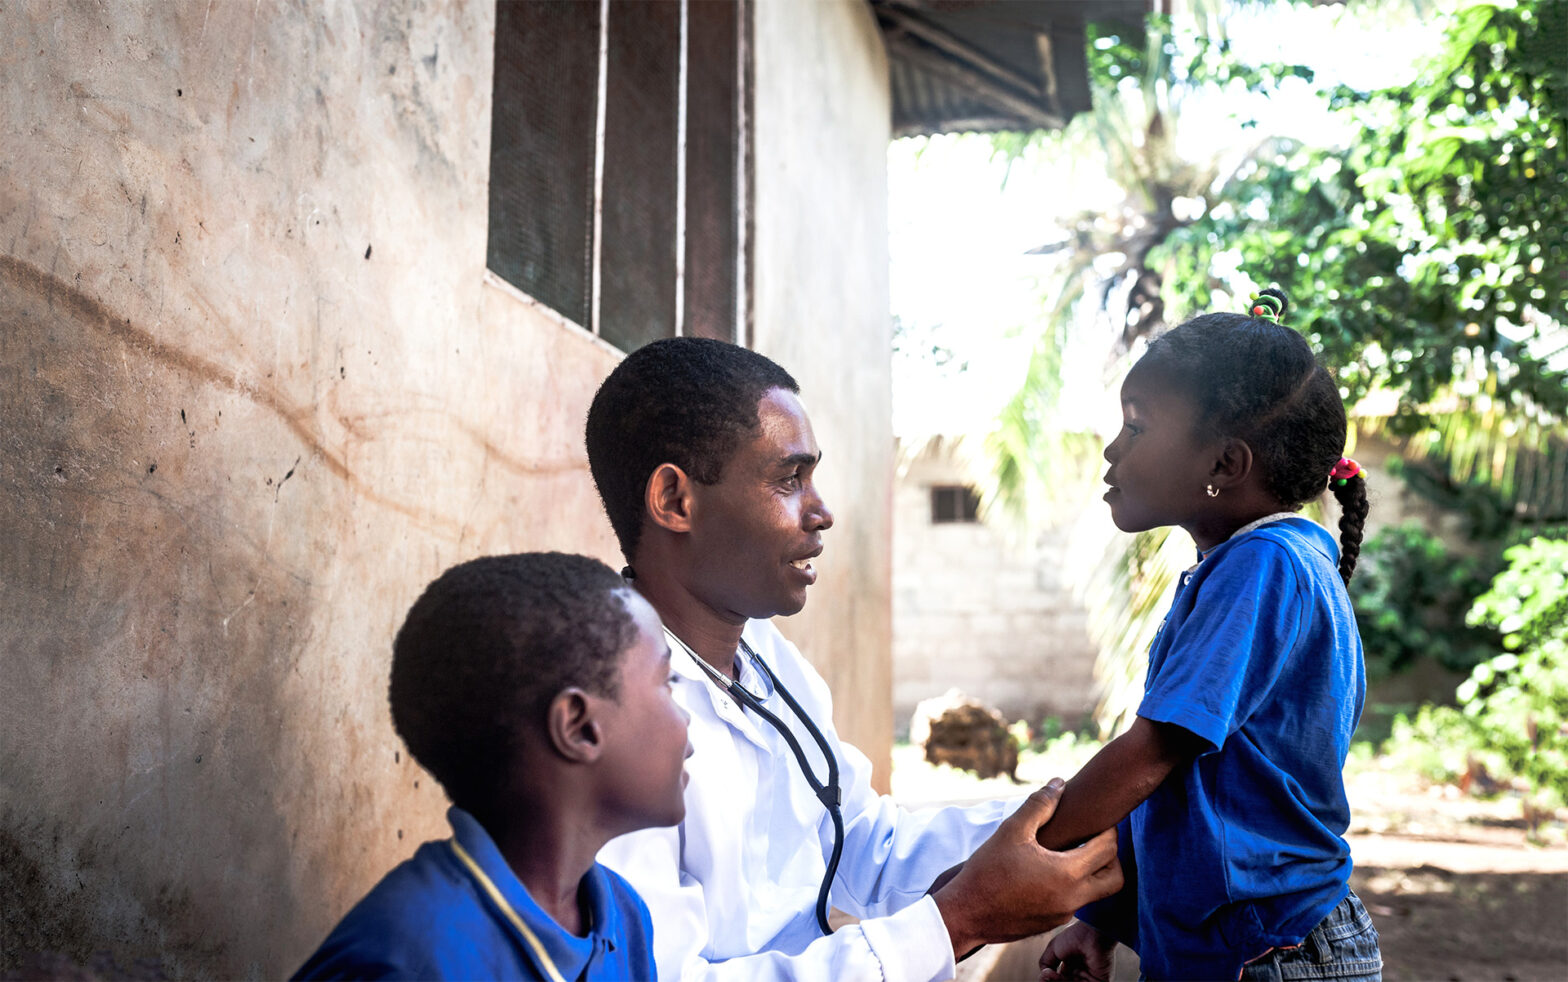 A doctor with two children in Africa.